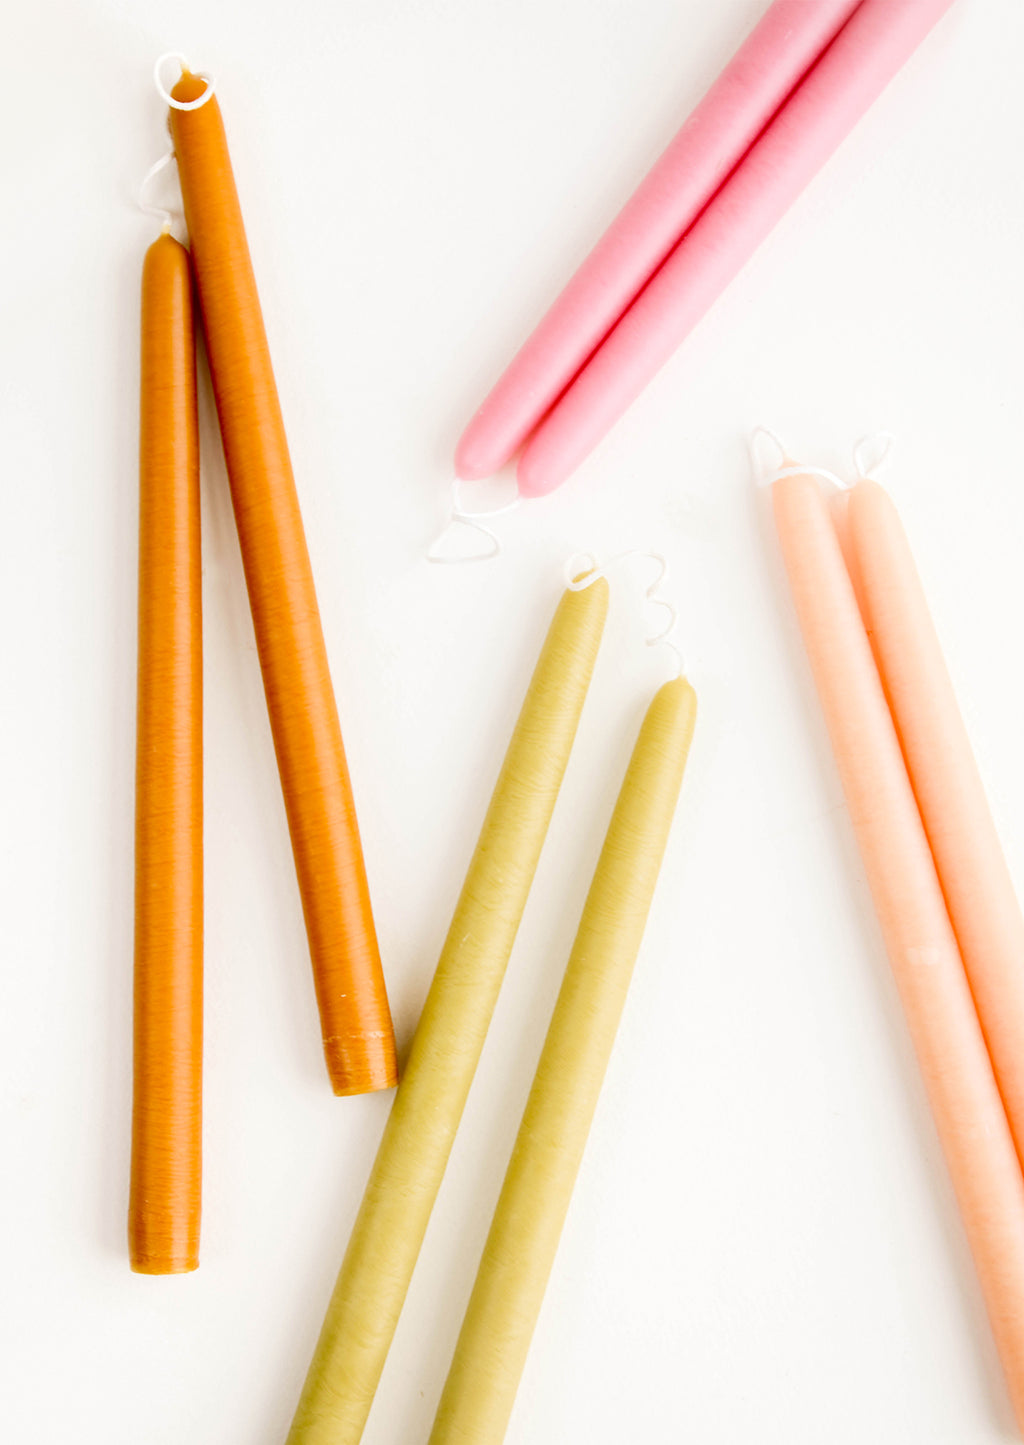 3: An arrangement of colorful taper candles